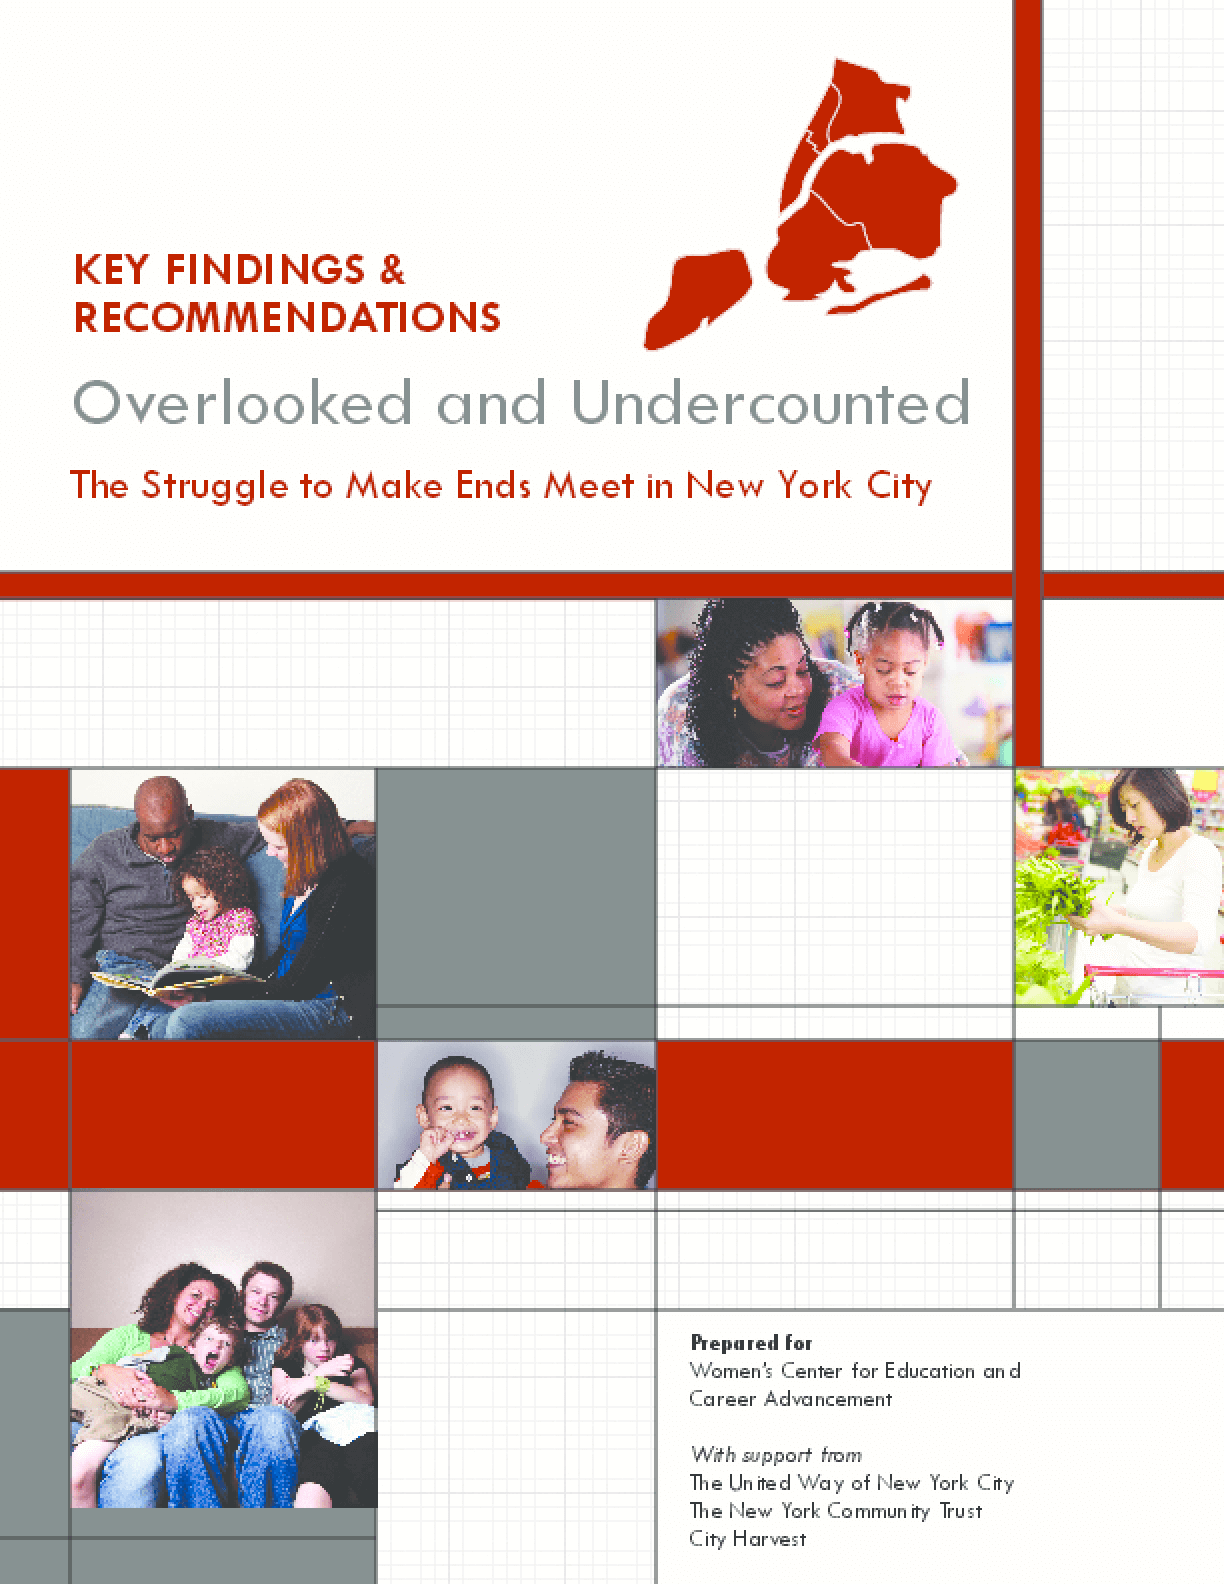 Overlooked and Undercounted - The Struggle to Make Ends Meet in New York City - Key Findings and Recommendations